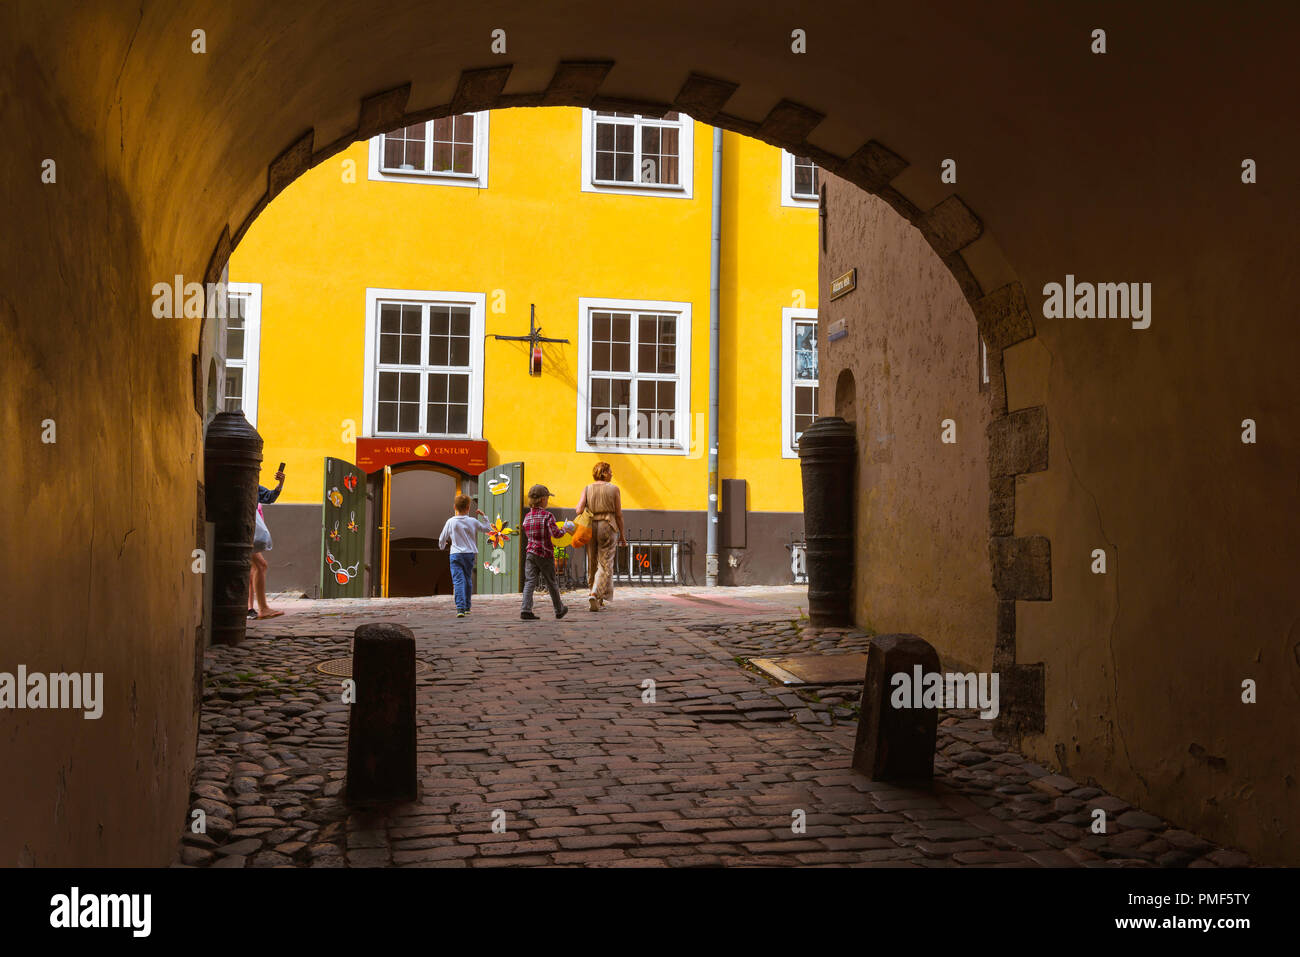 Swedish Gate Riga, view through the Swedish Gate to the colorful row of yellow buildings known as Jacob's Barracks in Tornu Iela in medieval Old Riga. - Stock Image